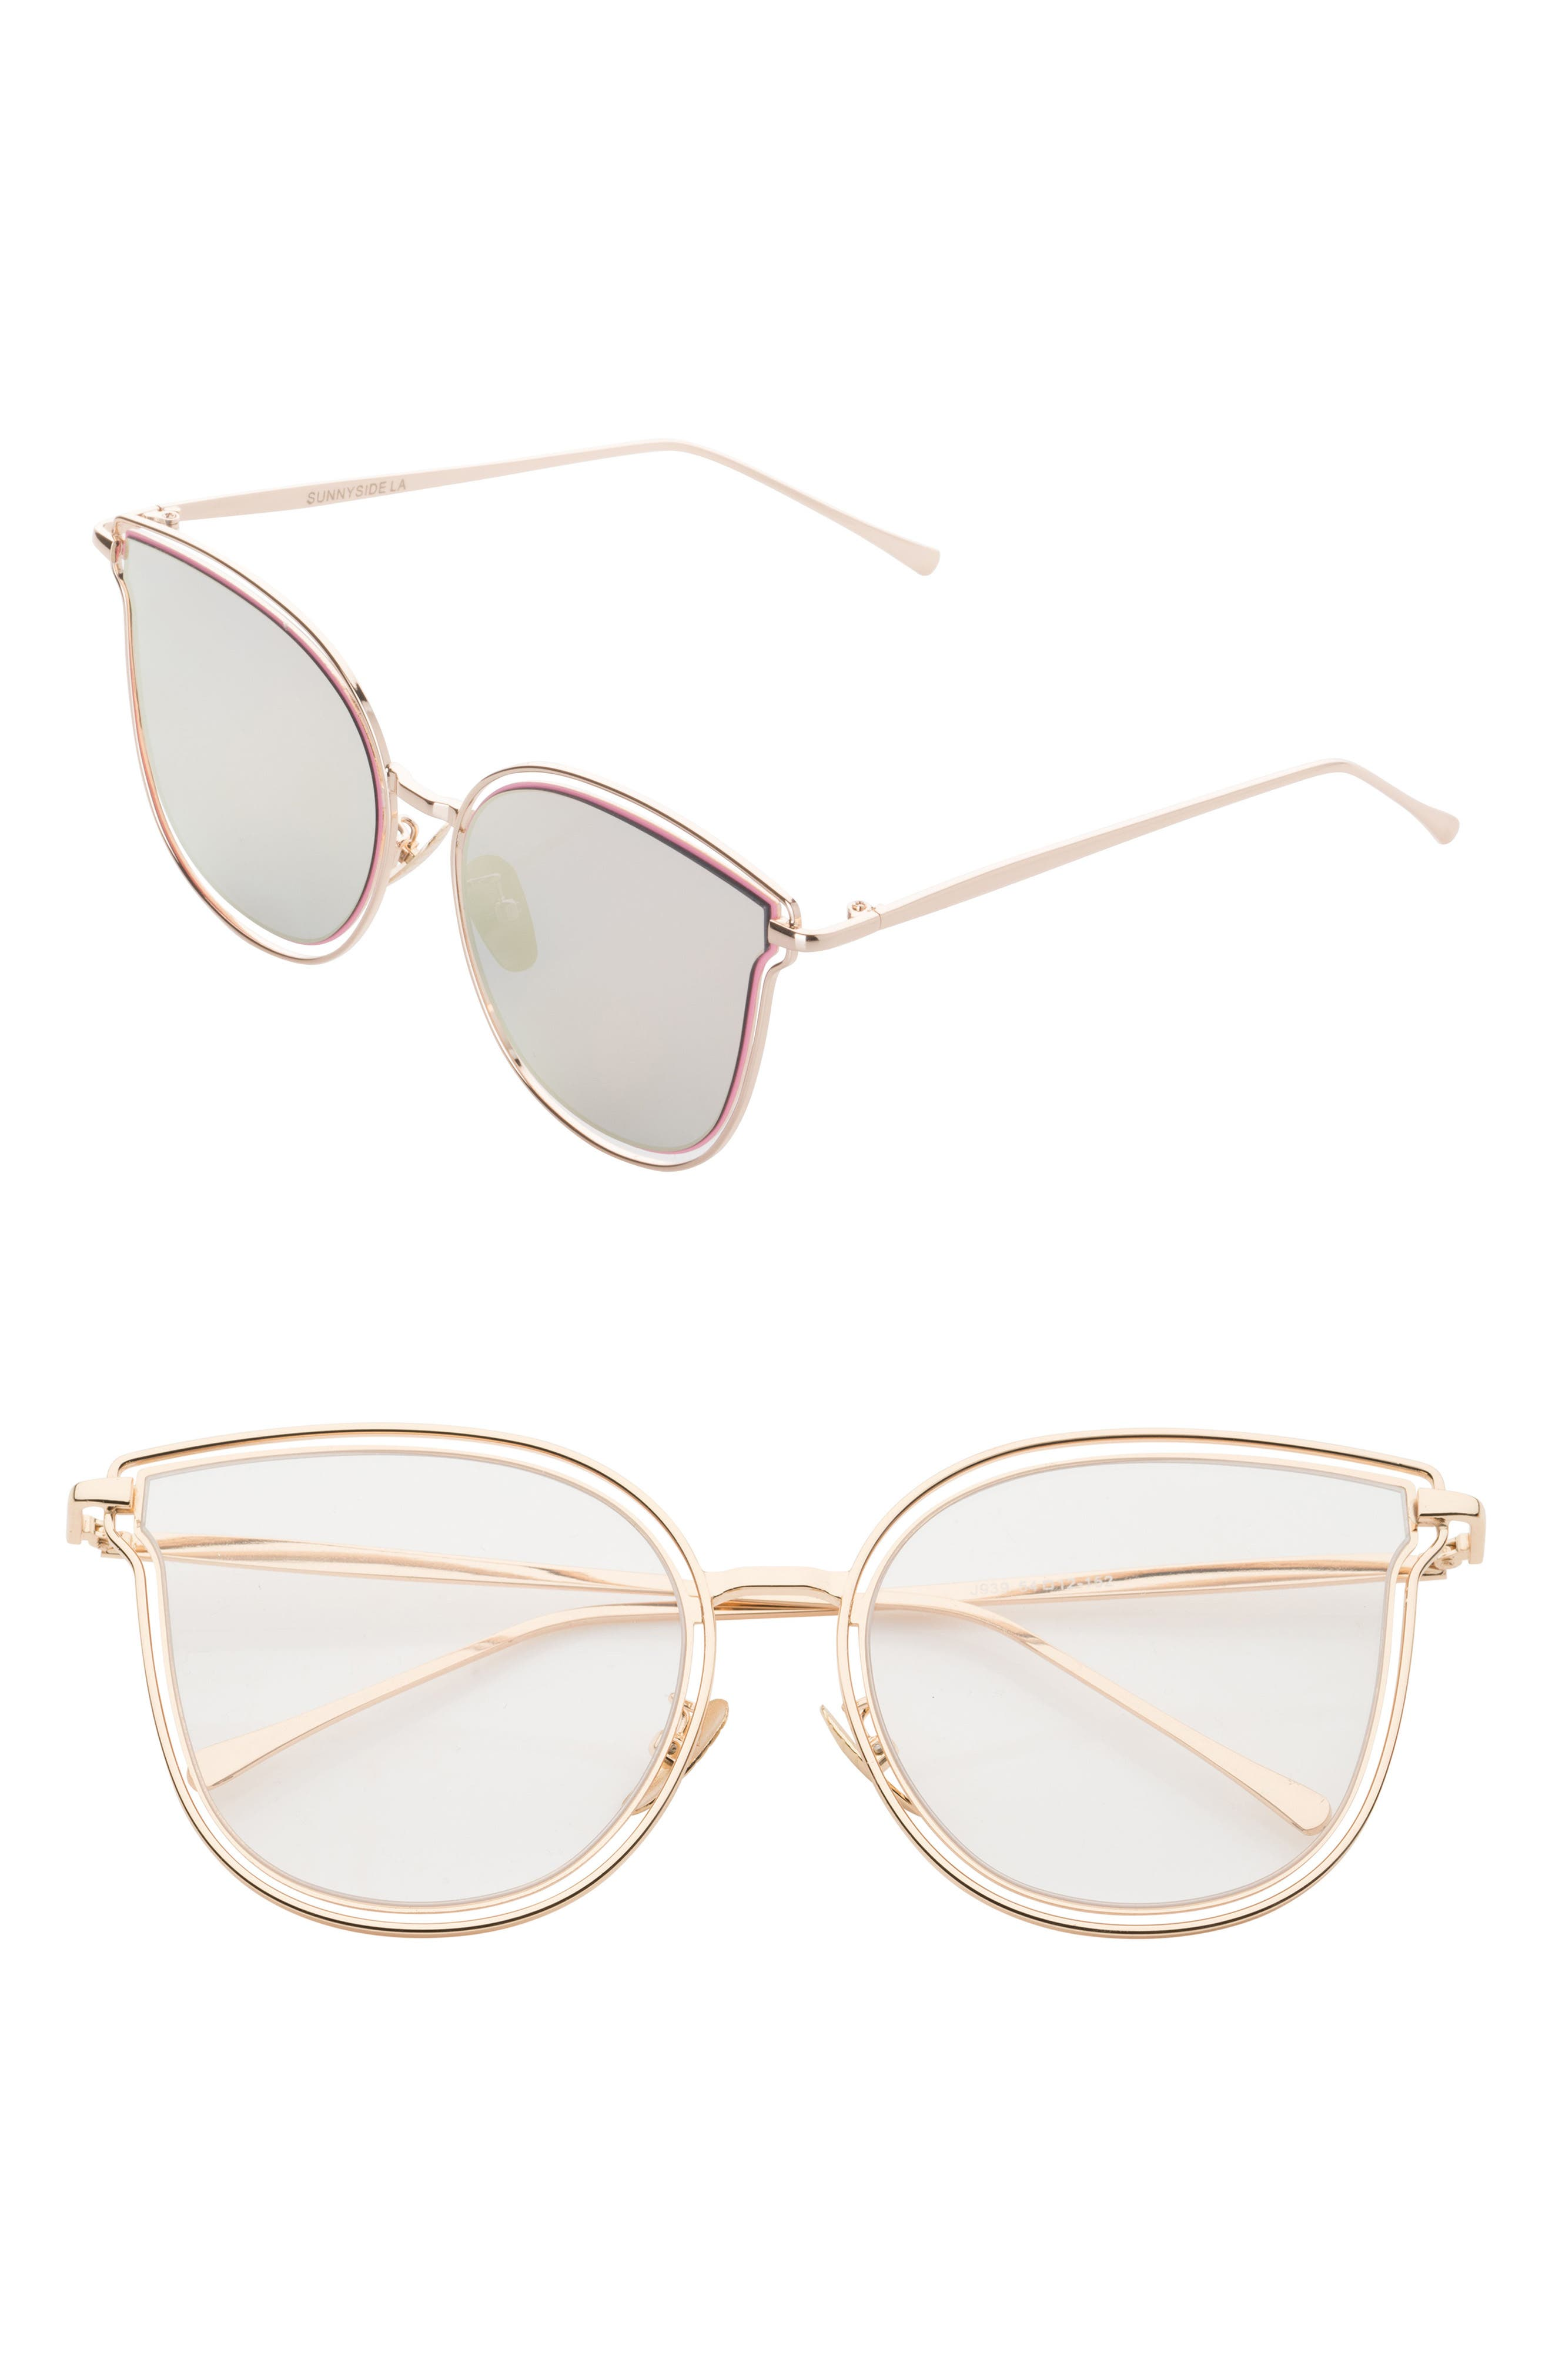 54mm Cat Eye Clear Glasses,                             Main thumbnail 1, color,                             Gold